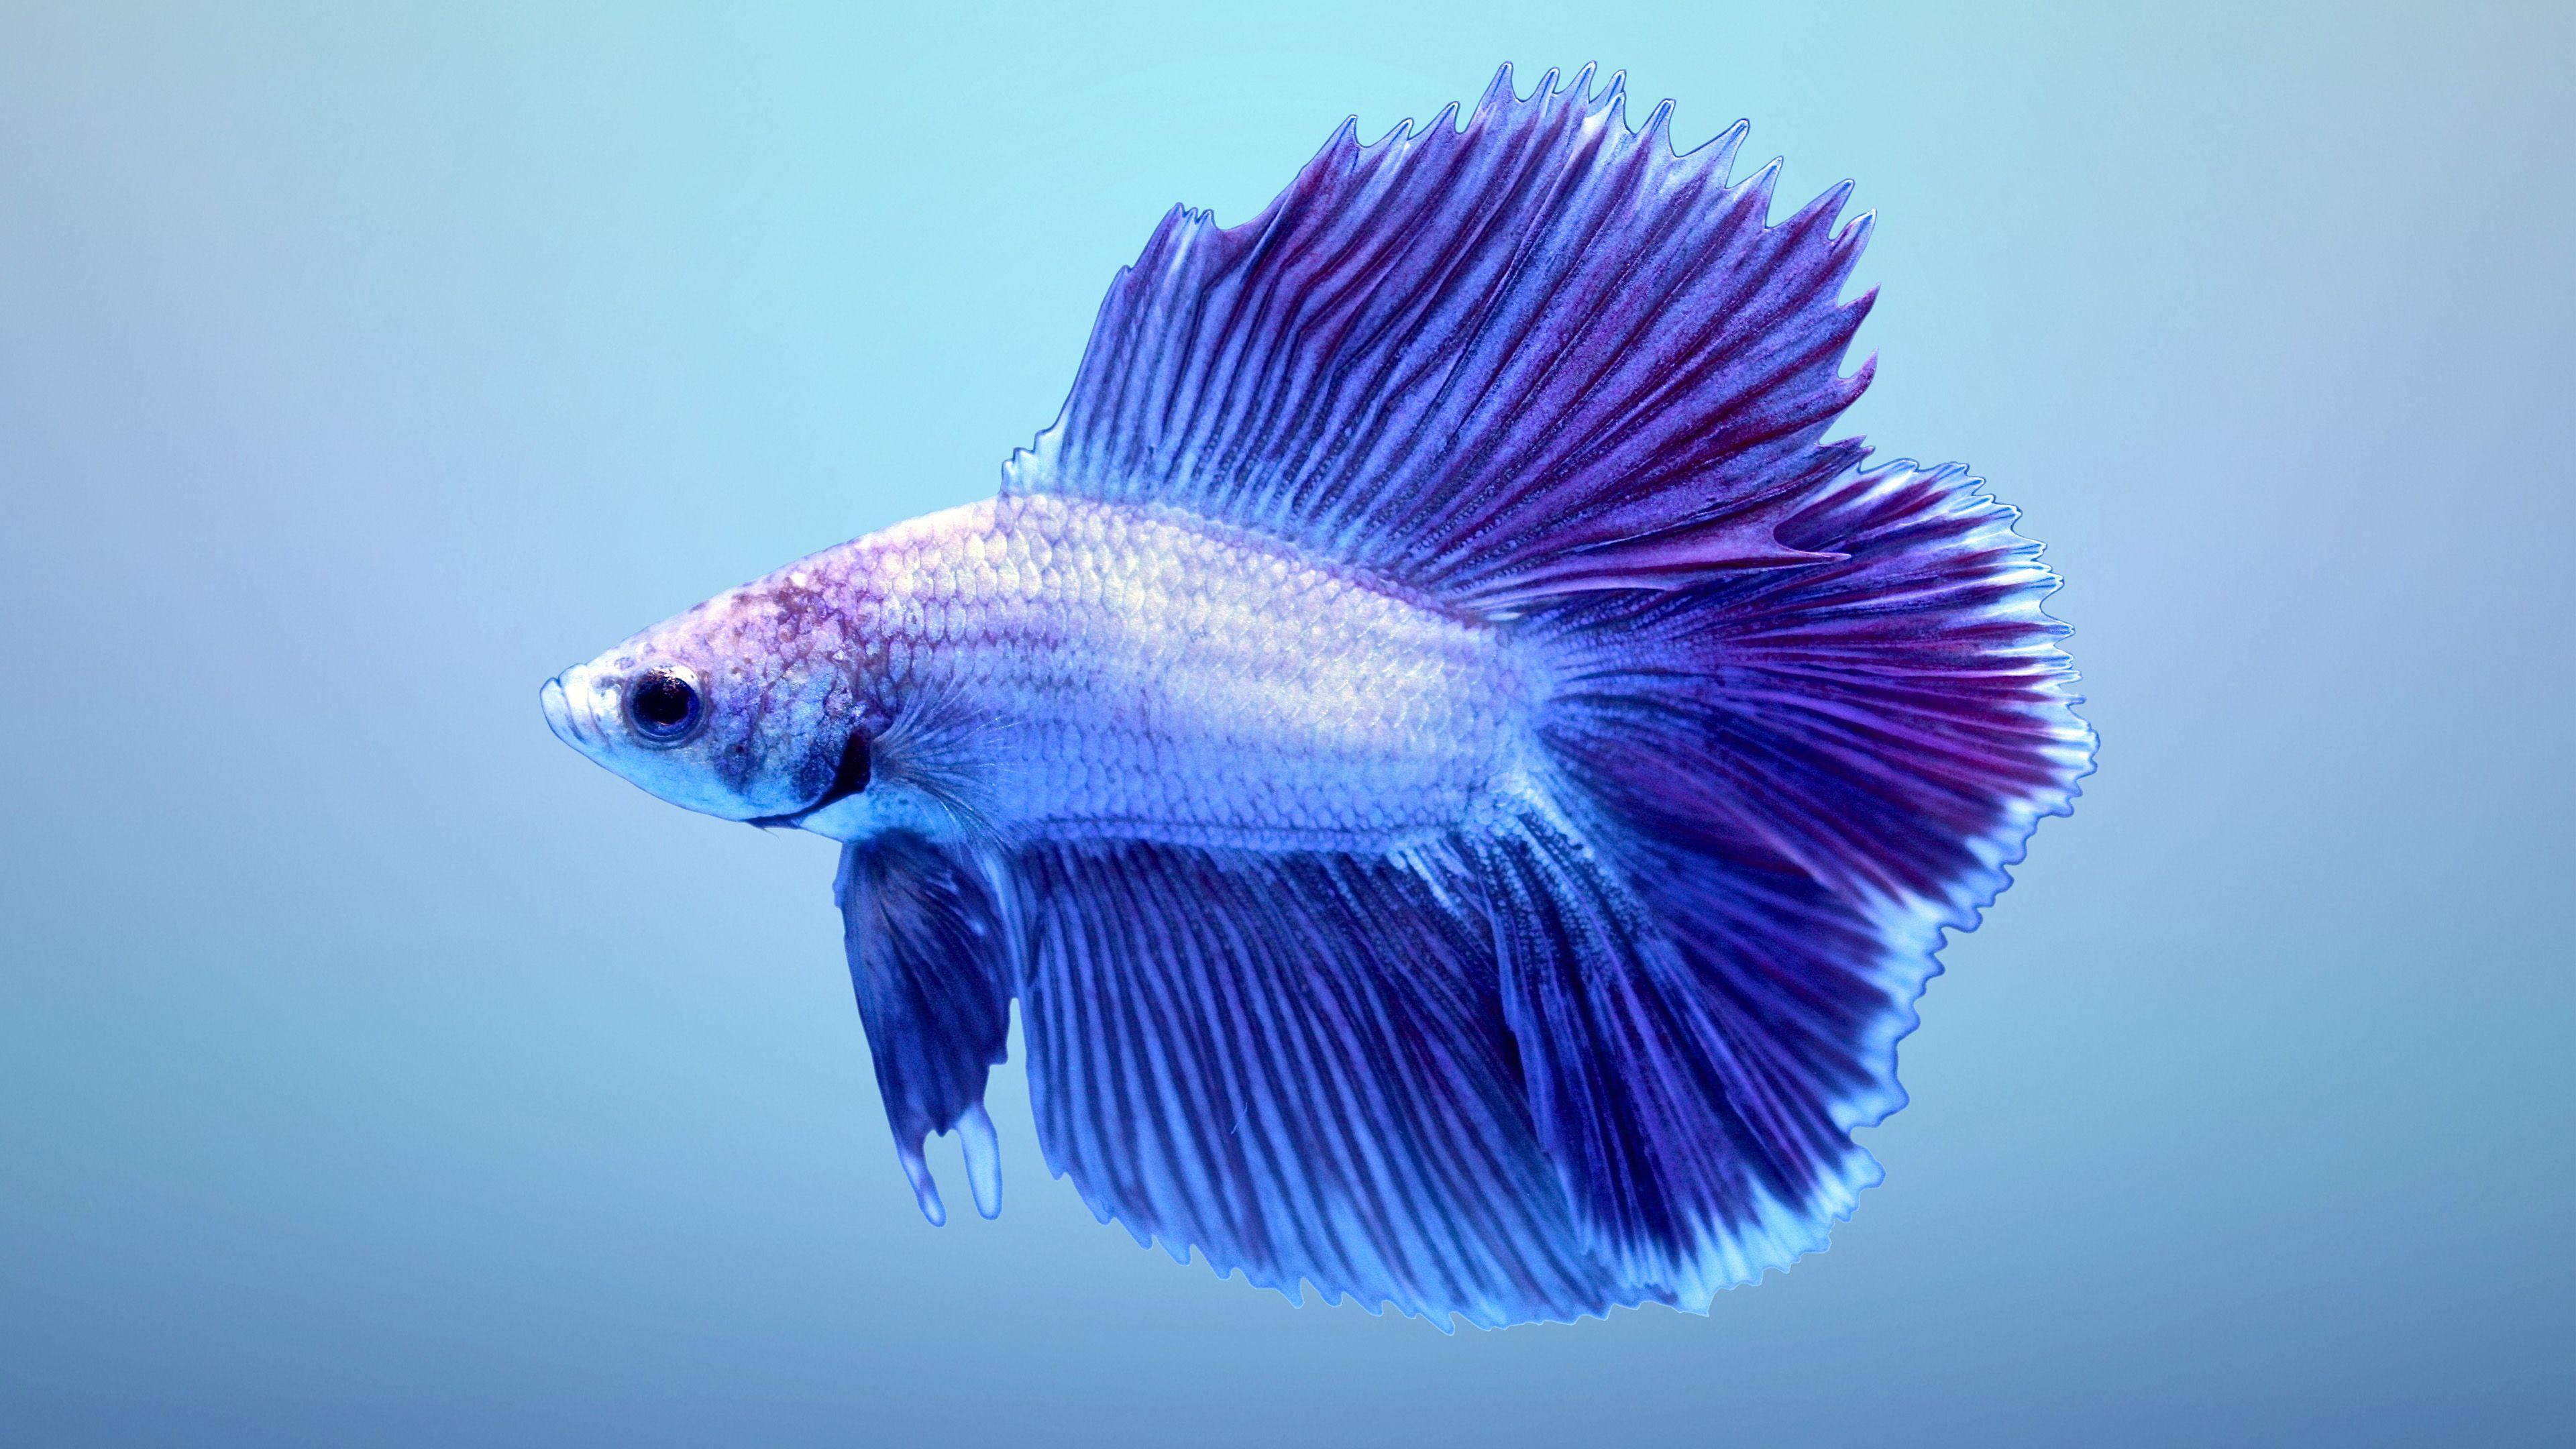 Betta Fish Wallpapers - Cueva de fondo